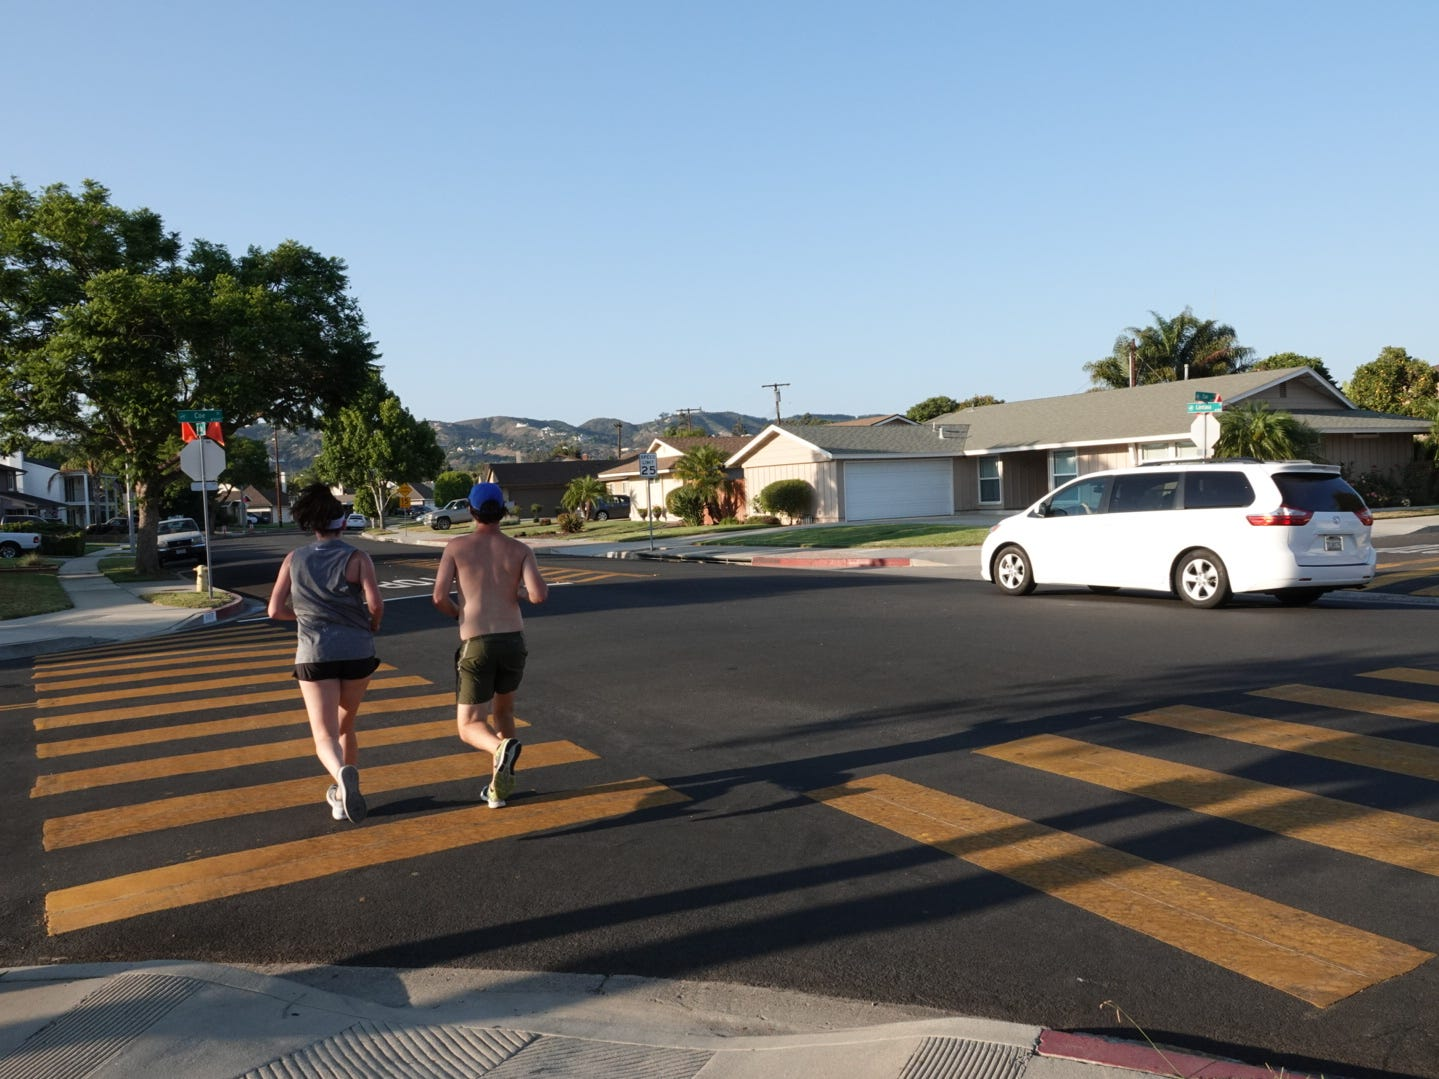 Four-way stop signs at Lantana and Coe streets in Camarillo were recently installed after years of requests from residents who have had vehicles run into their property.